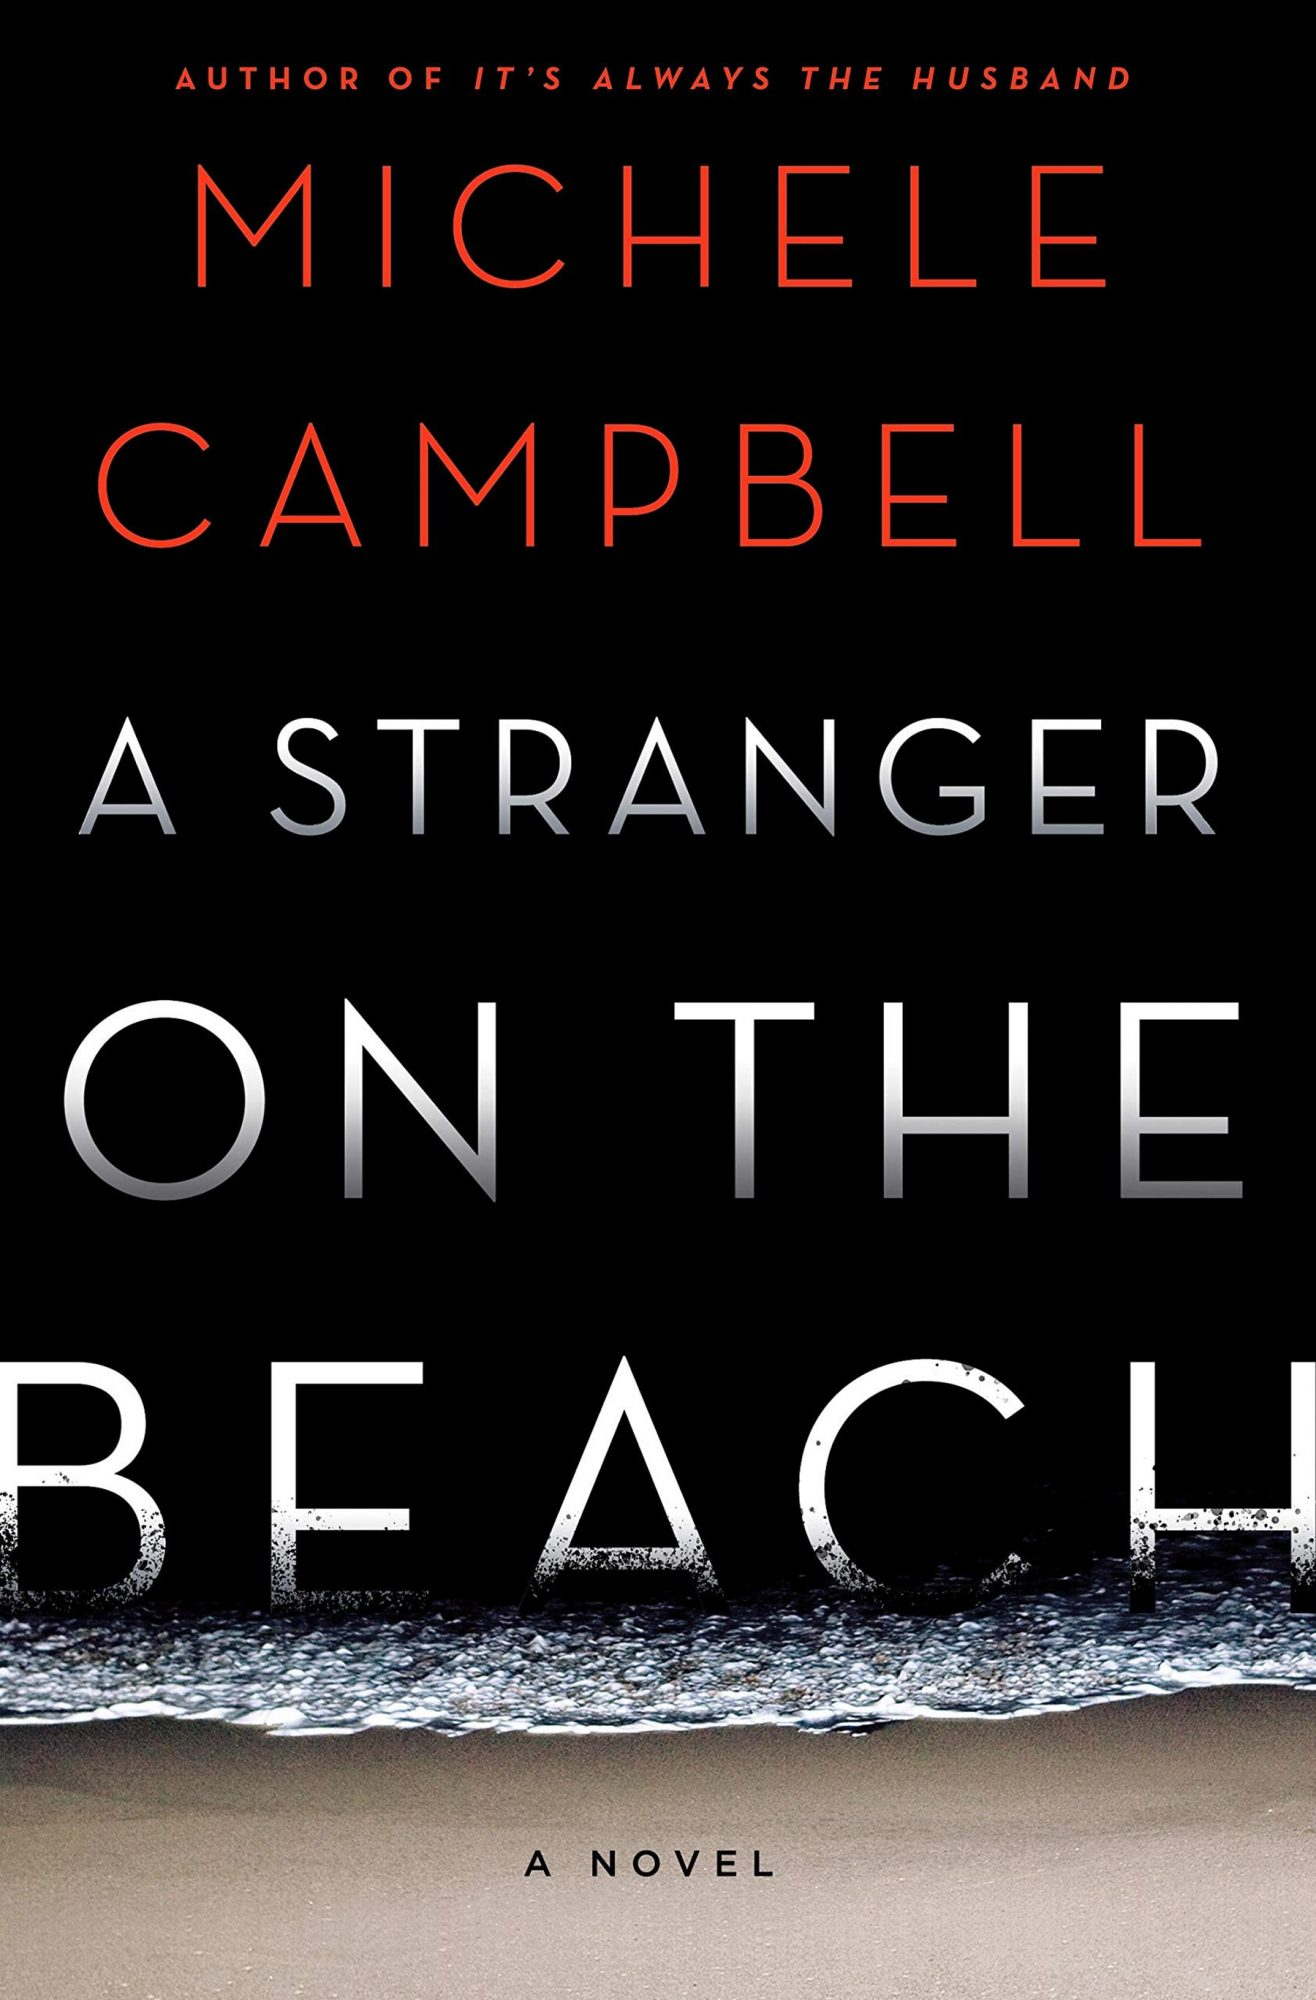 A-Stranger-on-the-Beach-by-Michele-Cambell-